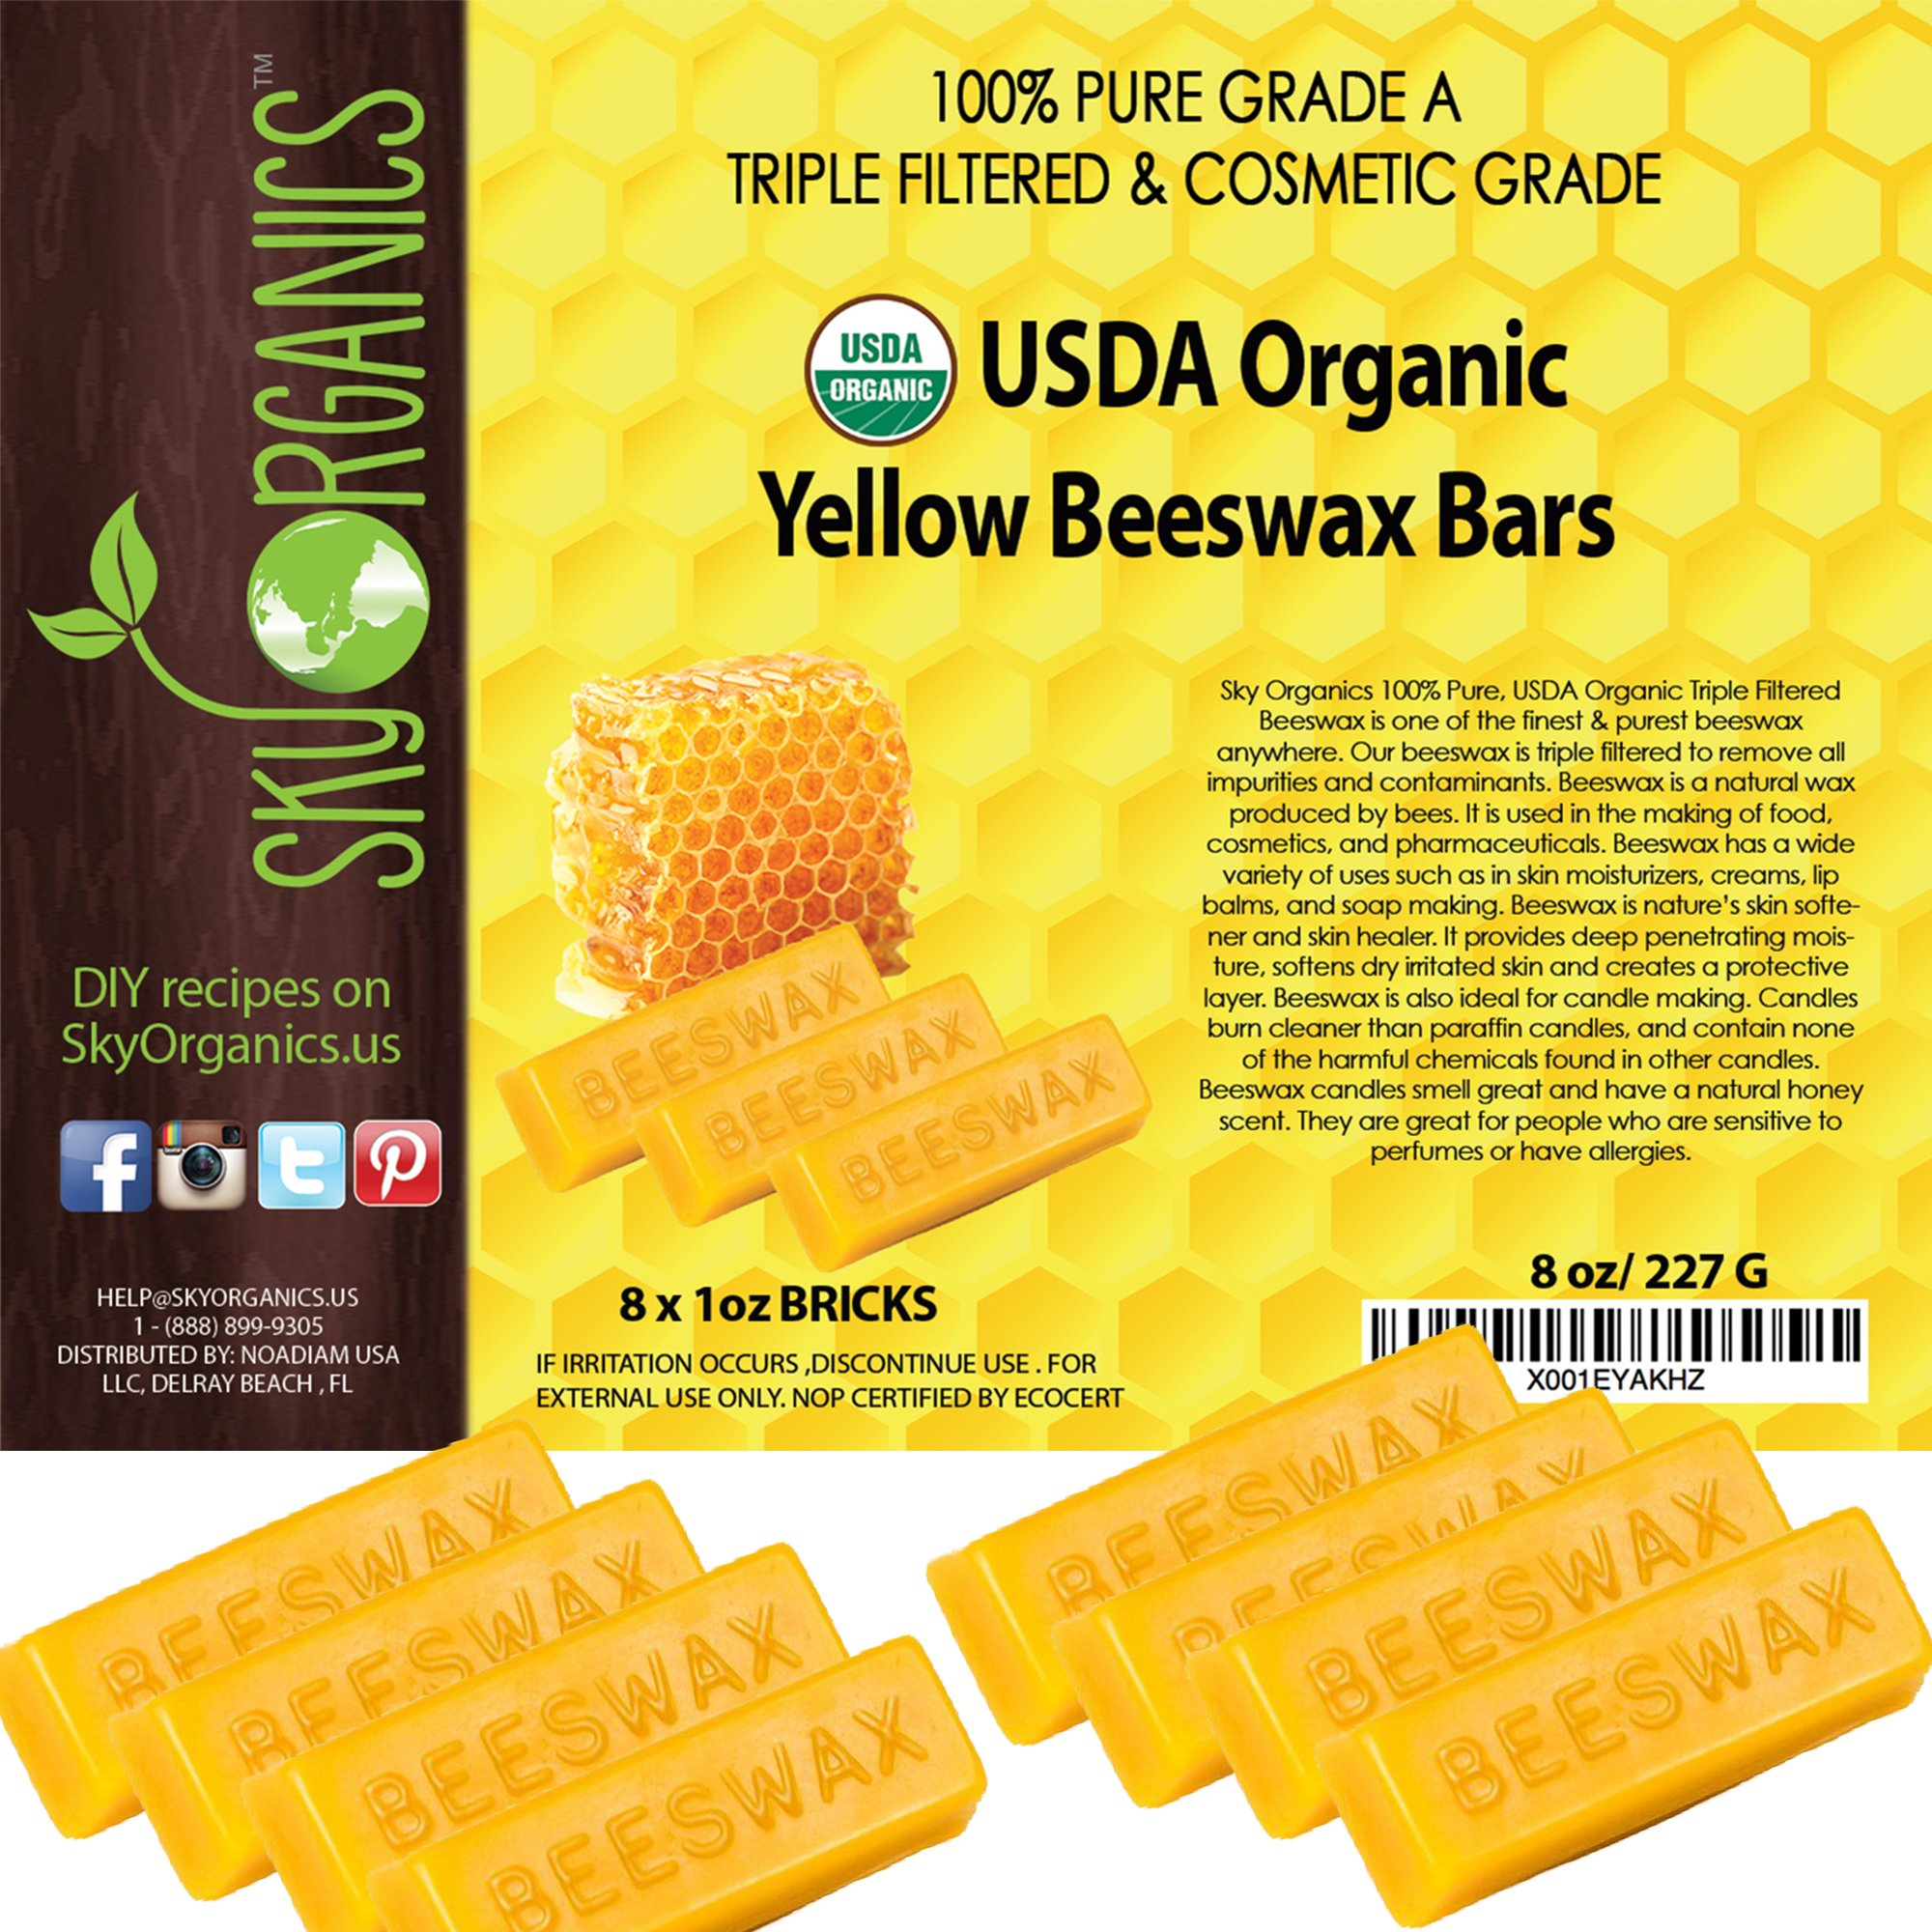 Sky Organics USDA Organic Yellow Beeswax Bars by (8x1oz) -Superior Quality Pure Bees Wax No Toxic Pesticides or Chemicals - 3 x Filtered, Easy Melt Bricks - For DIY, Candles, Skin Care, Lip Balm